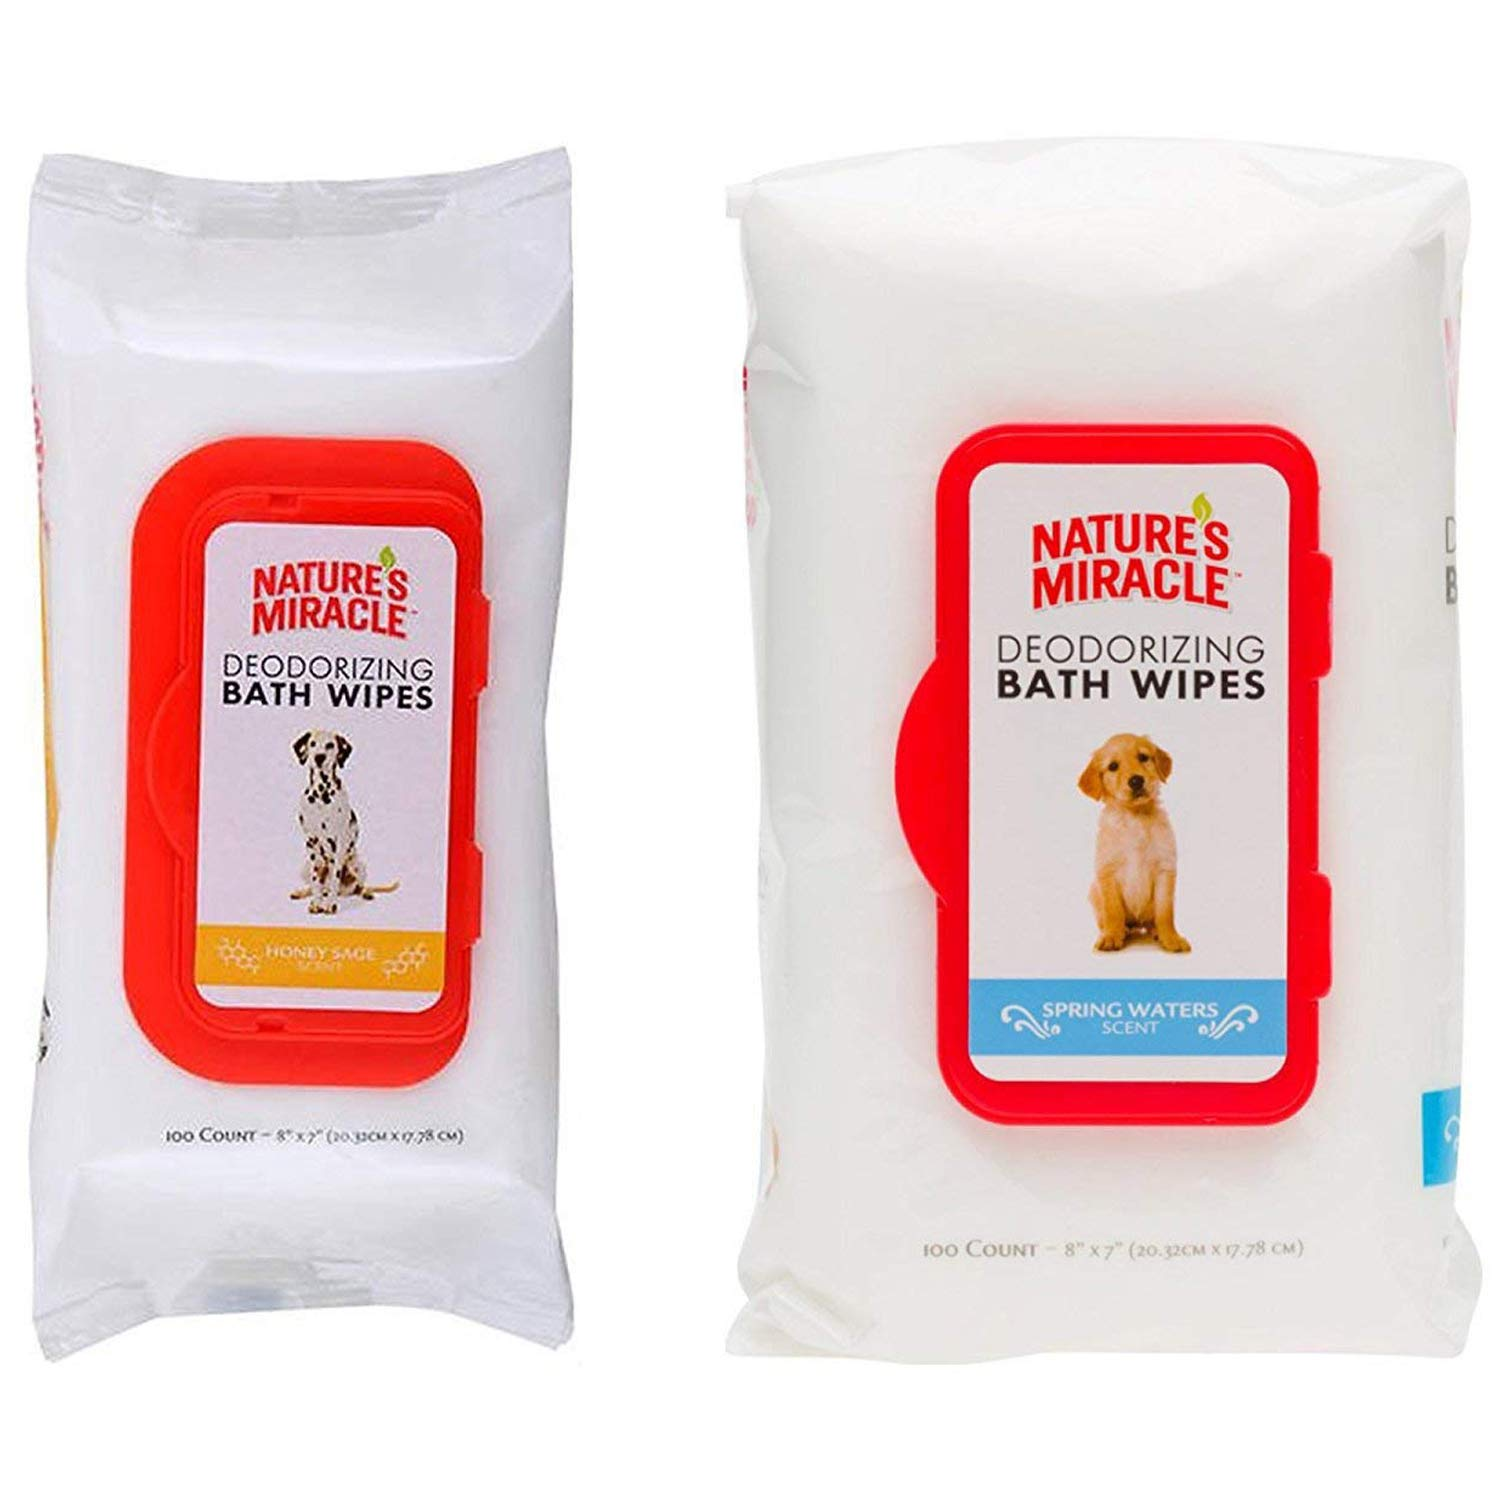 Maxtore Deodorizing Dog Wipes For Dogs & Puppy & More Small Pet Deodorizing Pet Grooming Bath Wipes & Paw Wipes Cleaner For Daily Use. Honey & Spring Flavors. Include Thematic Bonus.